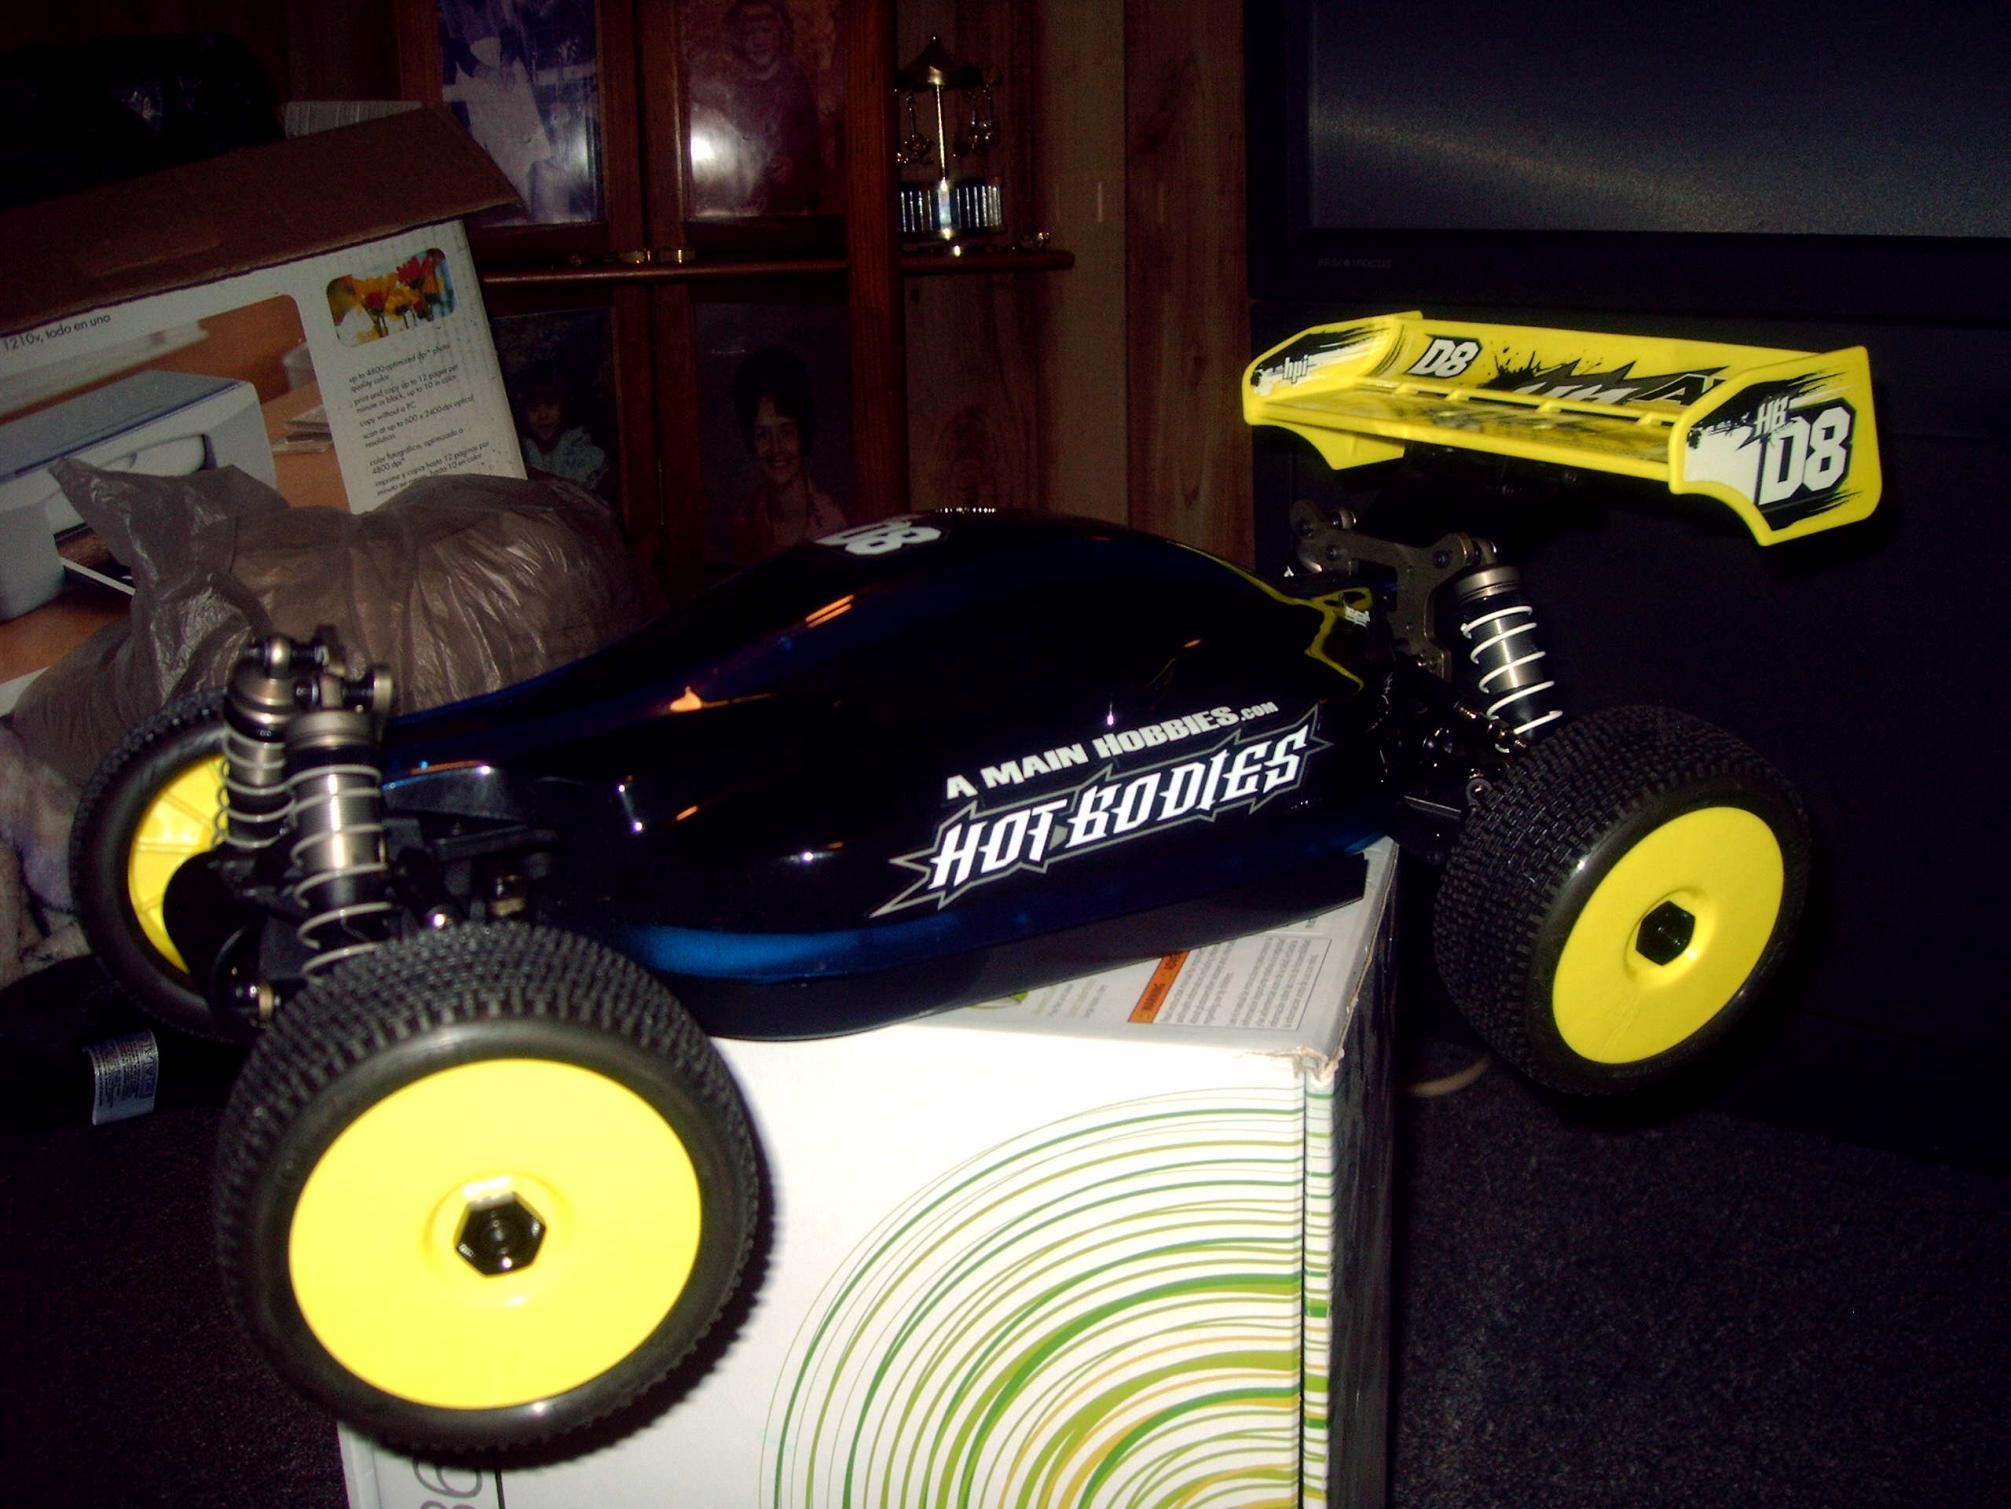 Hot bodies racing d817 v2 1/8 competition nitro buggy.